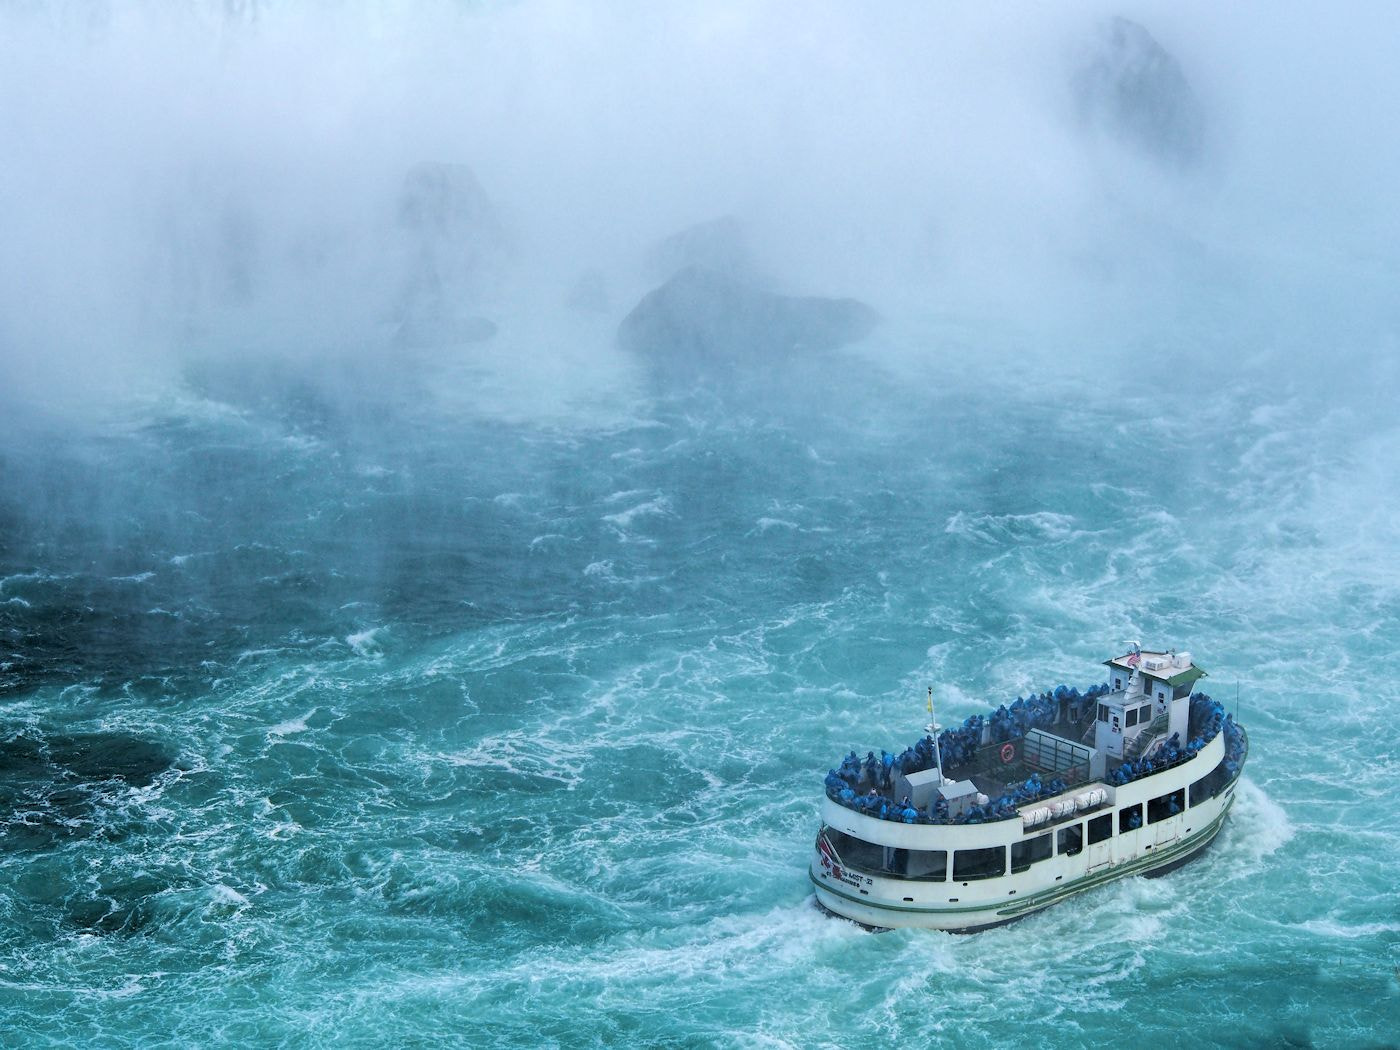 Photograph Maid of the Mist by Grant MacDonald on 500px